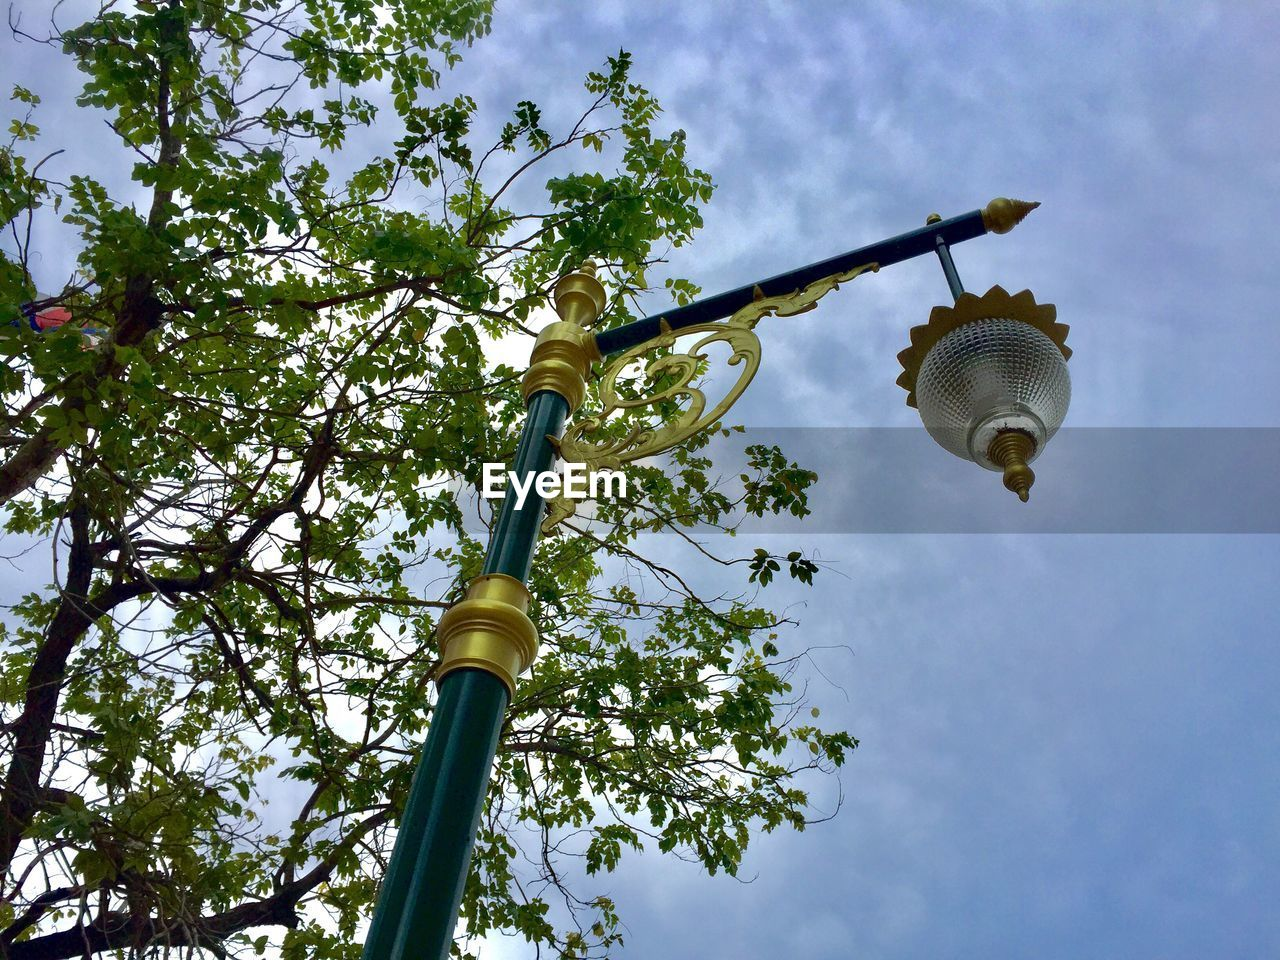 low angle view, tree, plant, sky, nature, growth, no people, day, cloud - sky, lighting equipment, branch, outdoors, green color, beauty in nature, light bulb, street light, hanging, animal, sunlight, built structure